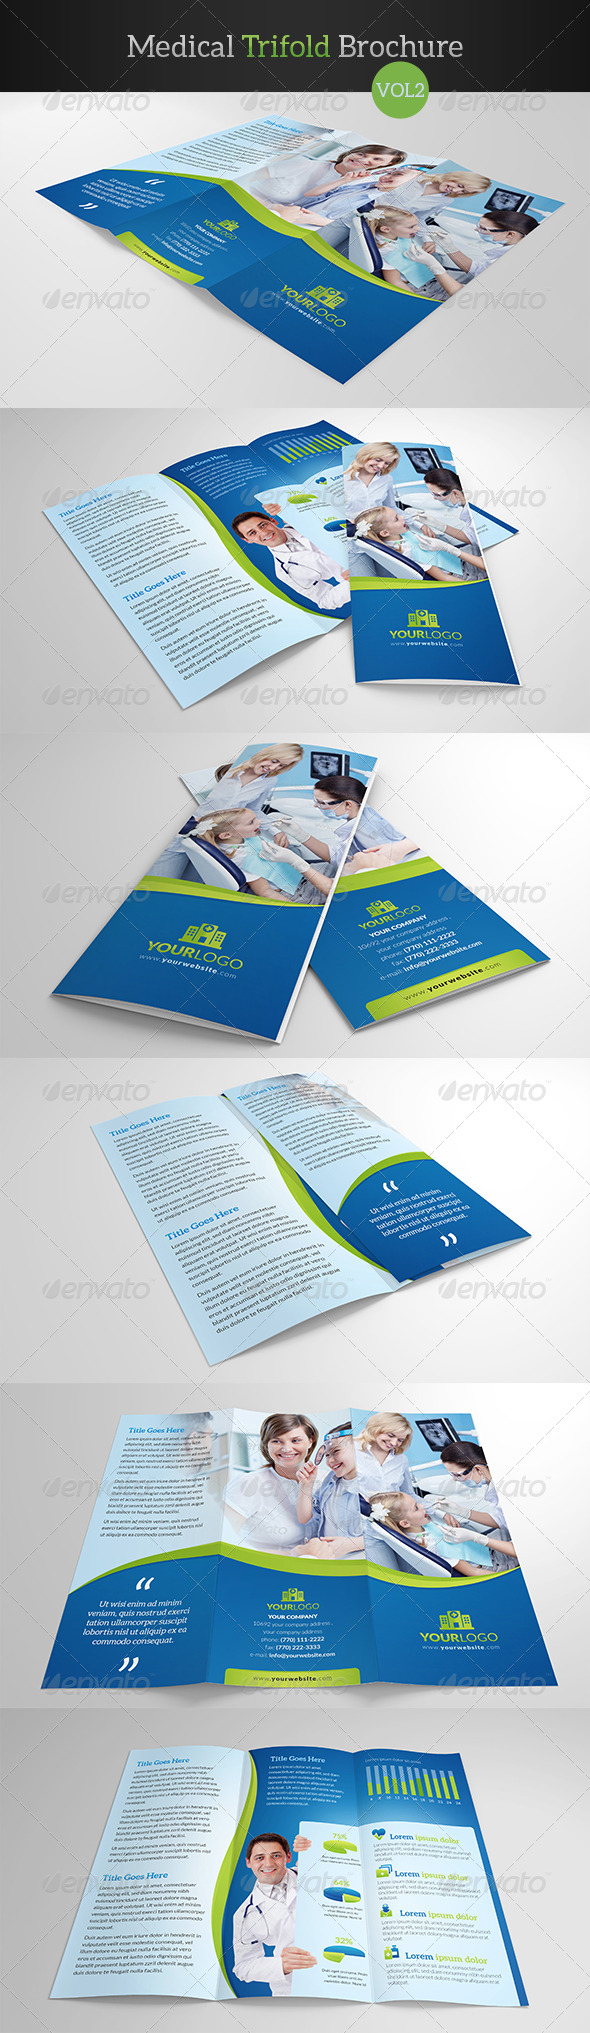 GraphicRiver Medical Trifold Brochure Vol2 8005155